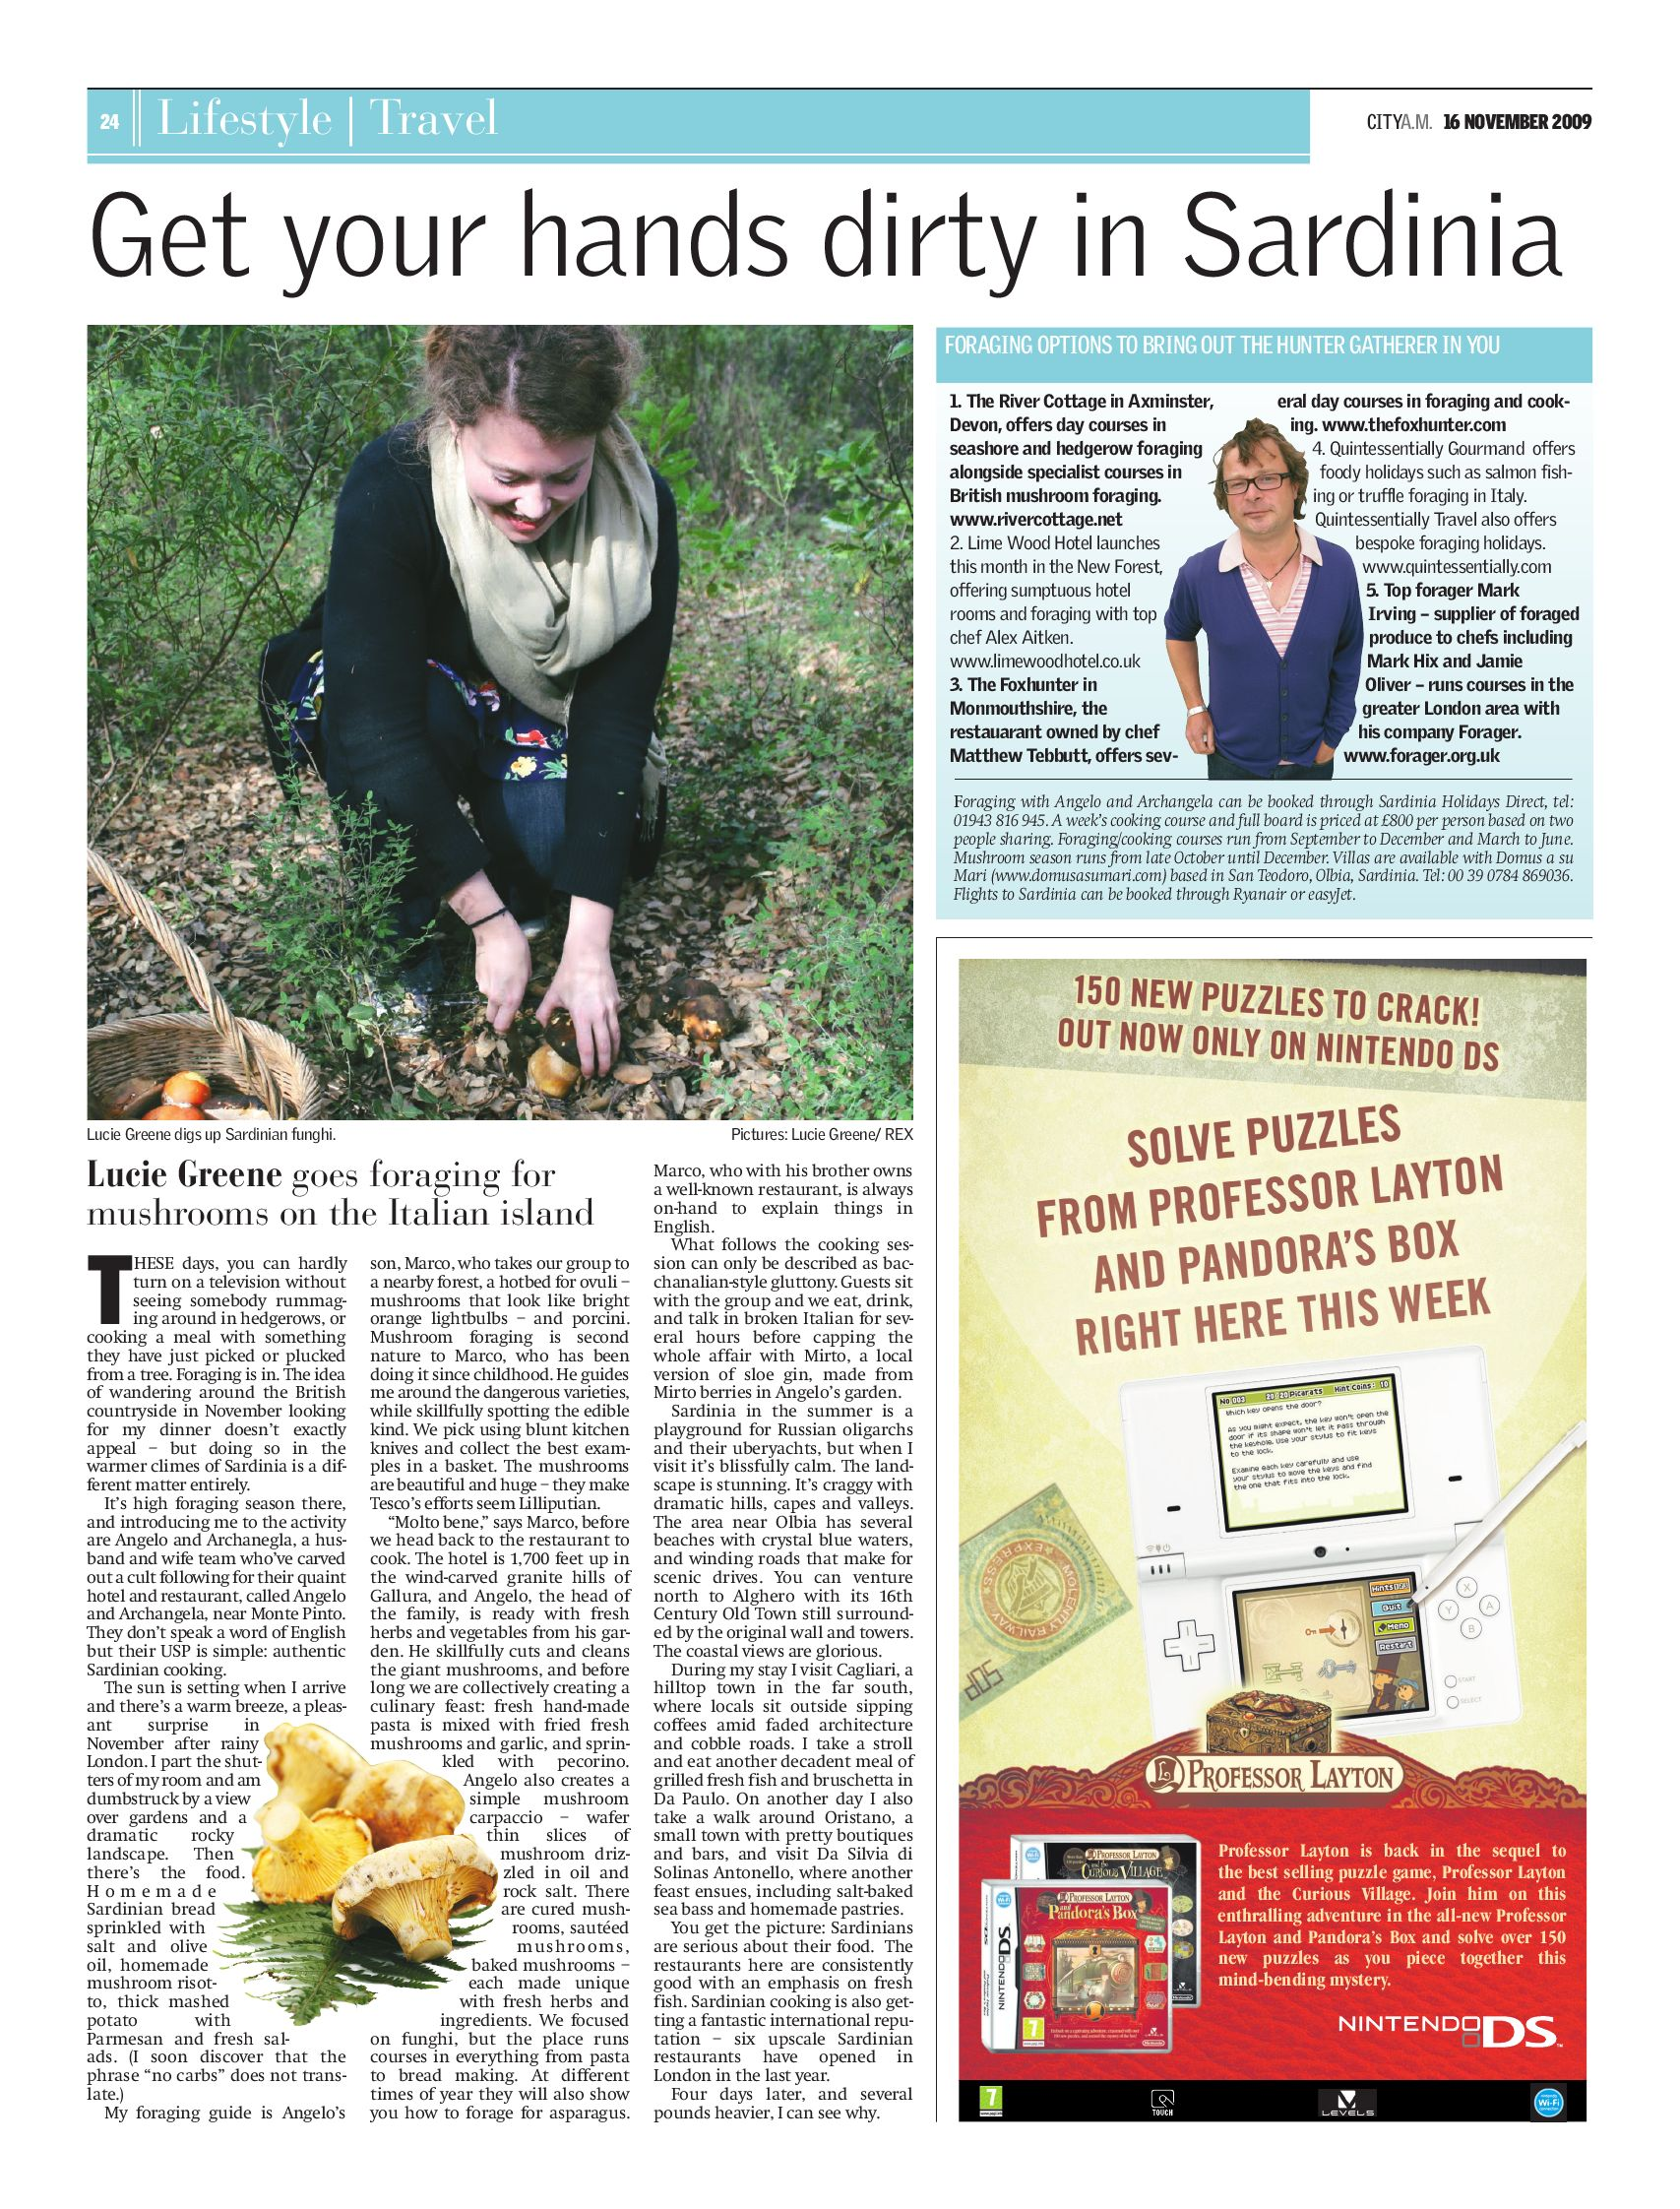 Get Your Hands Dirty In Sardinia City Am 16 11 09 By Lucie Greene Issuu